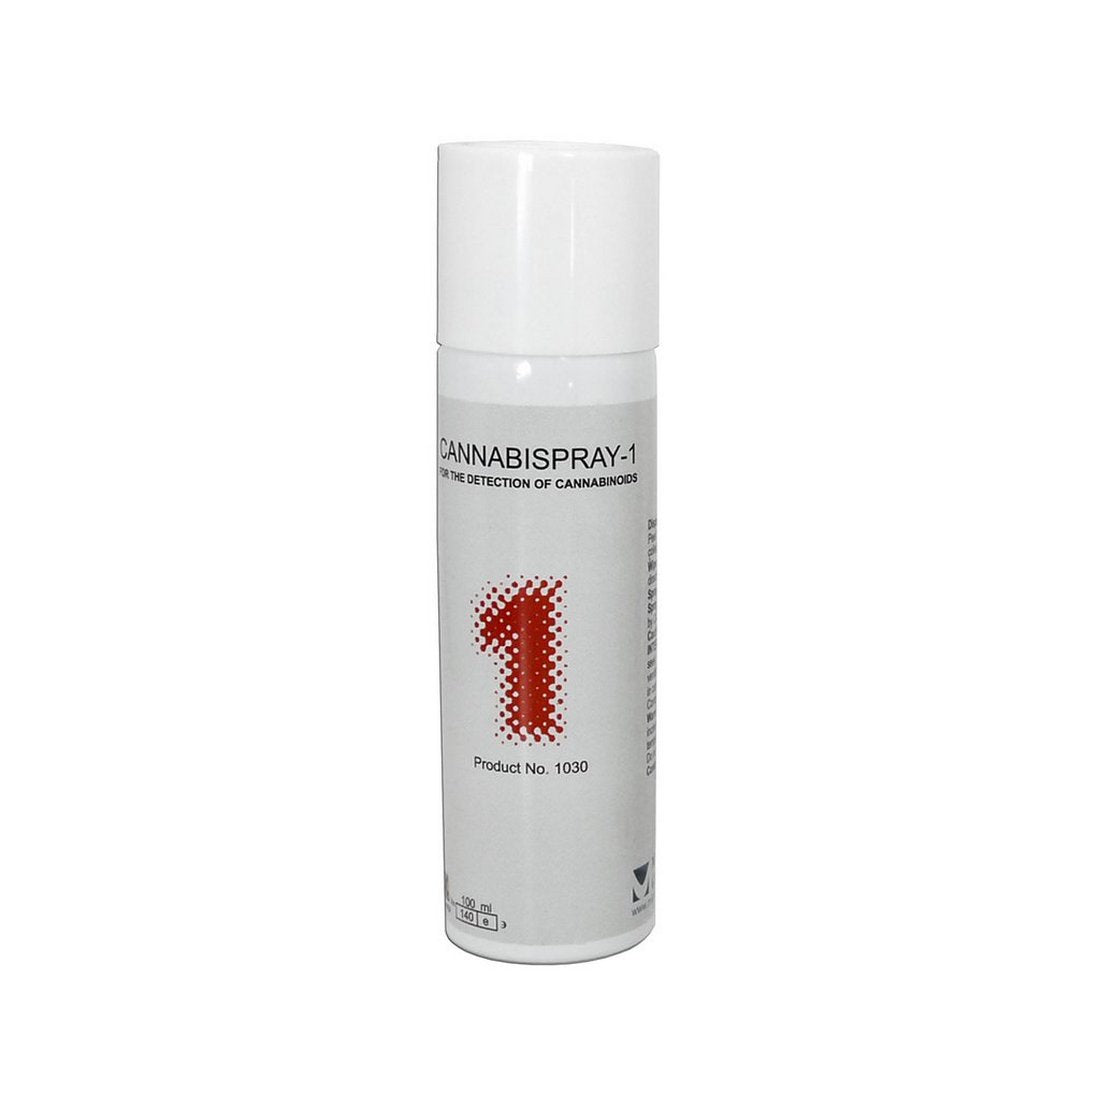 Mistral 01035 Cannabispray 1 (Mini) Drug Detection Aerosol